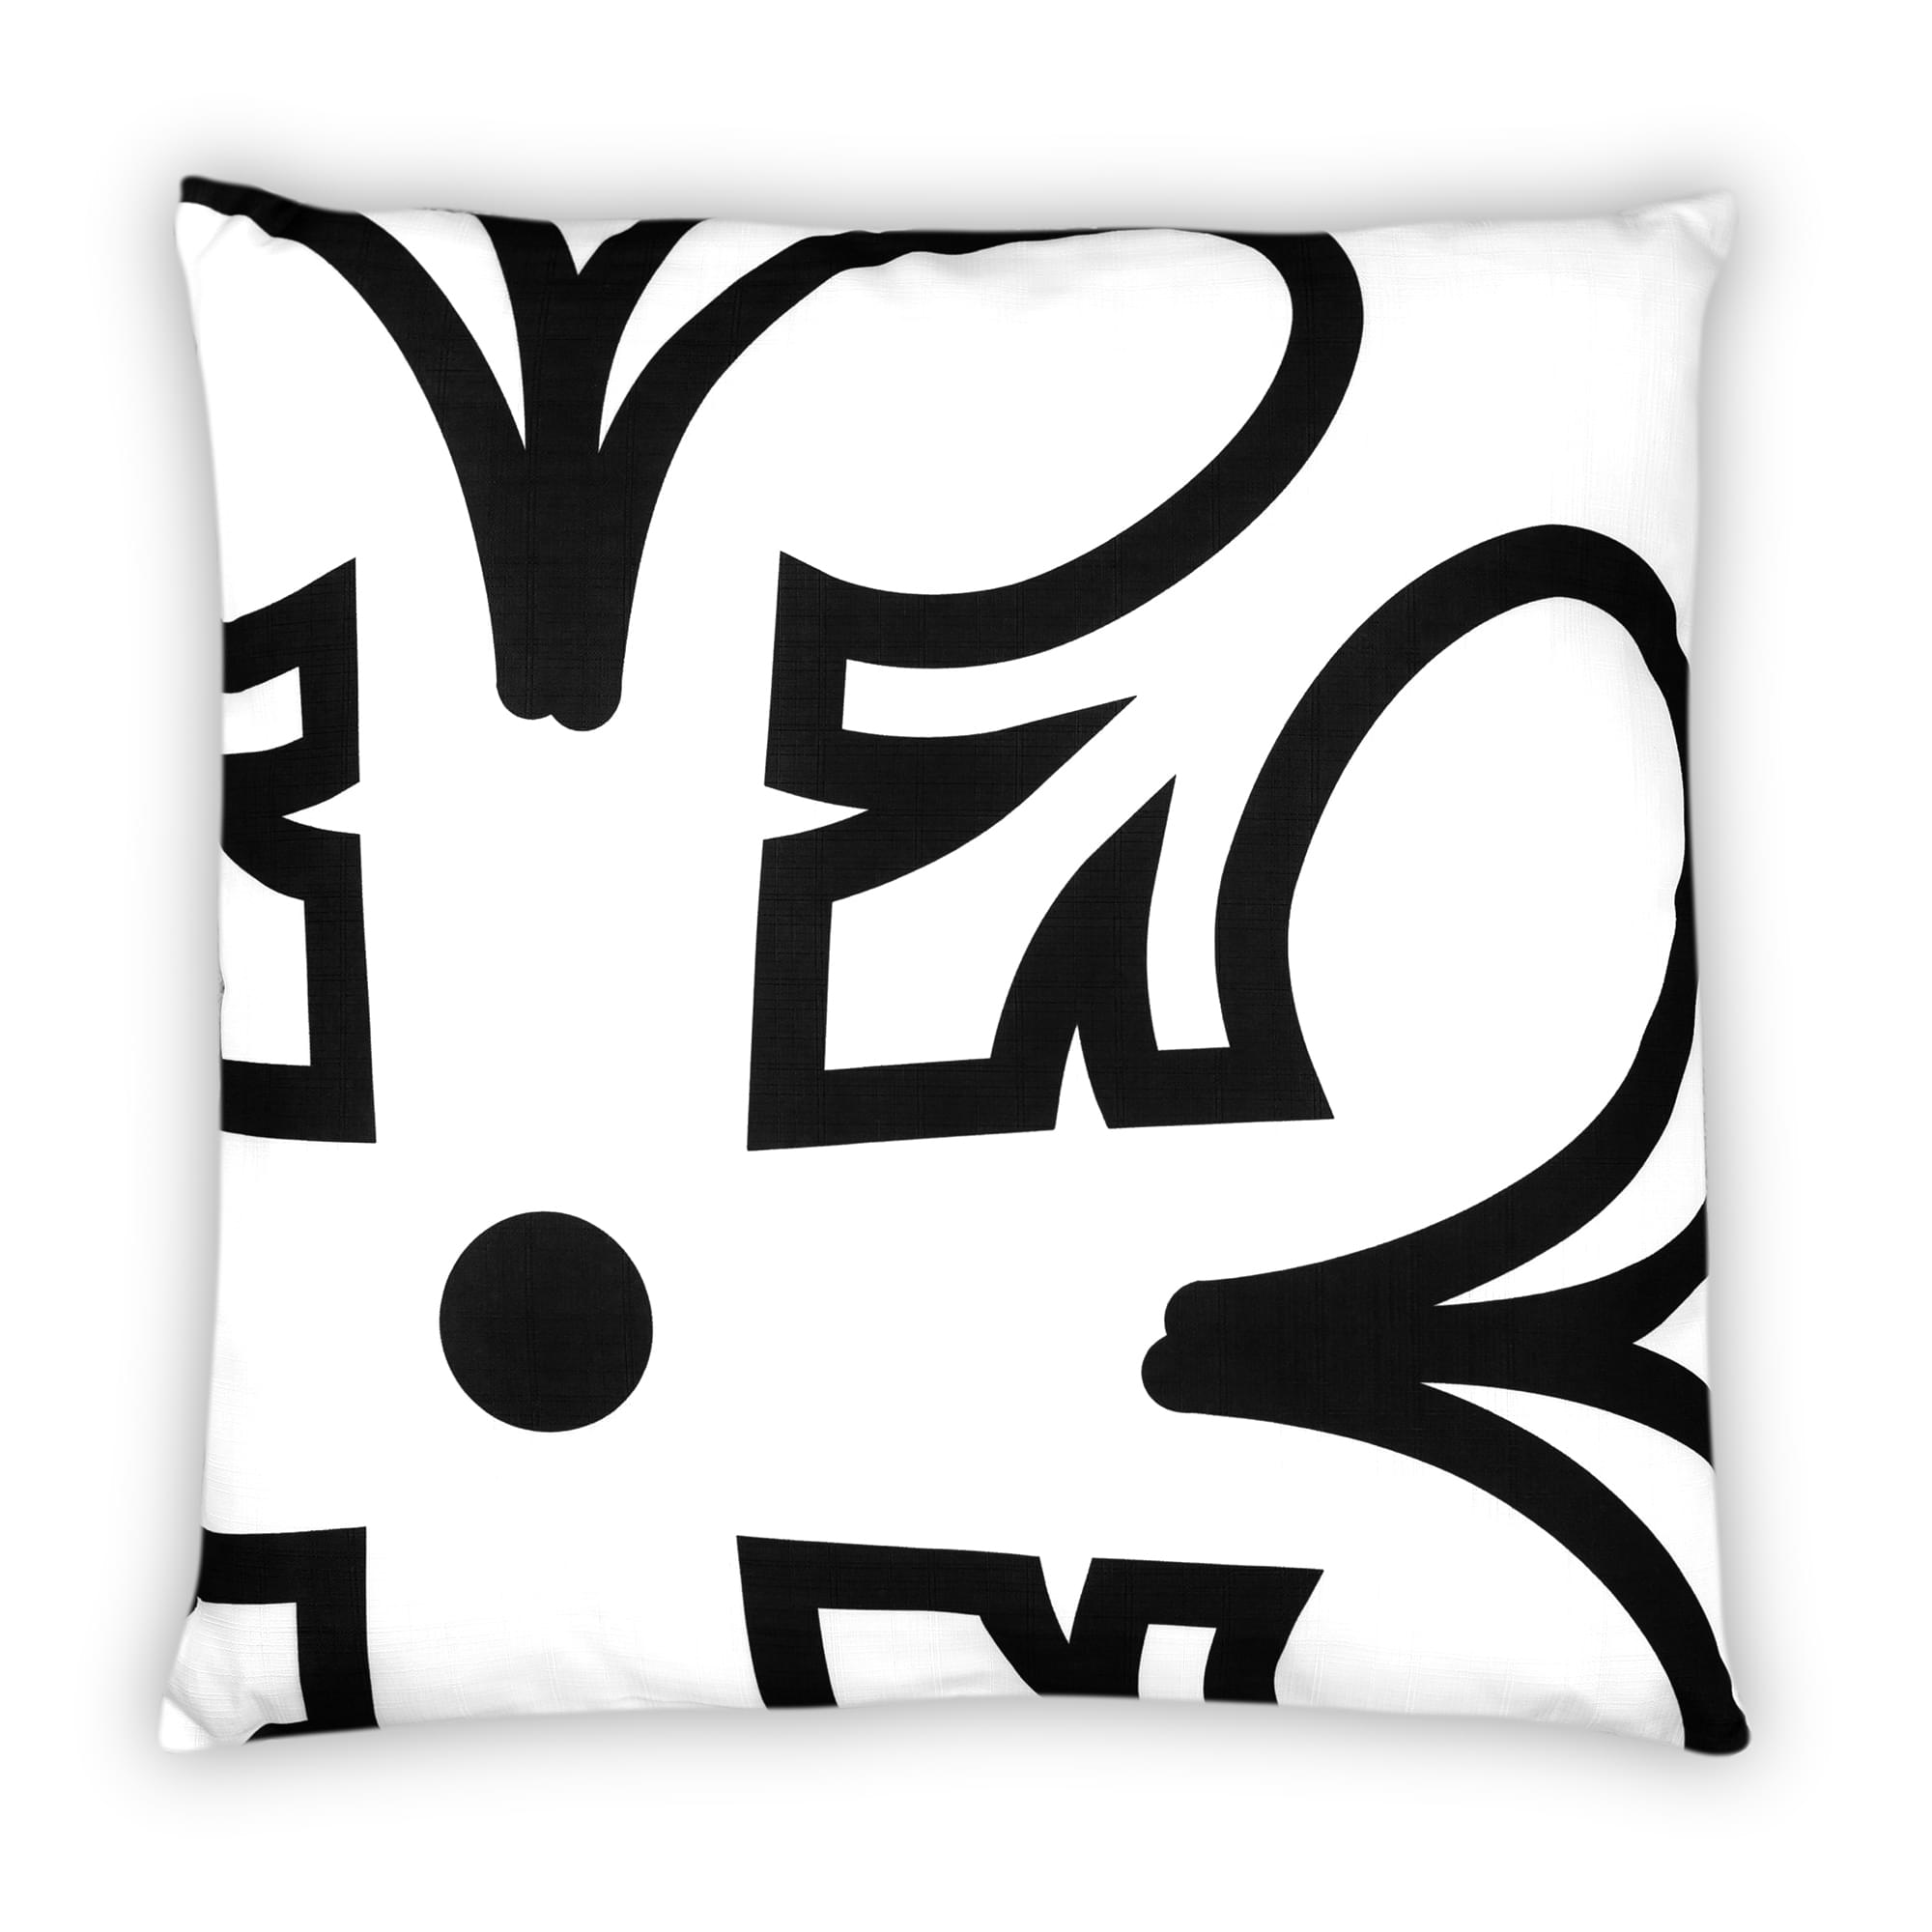 Star Wars White Throw Pillow | Black Rebel Insignia Pattern | 25 x 25 Inches